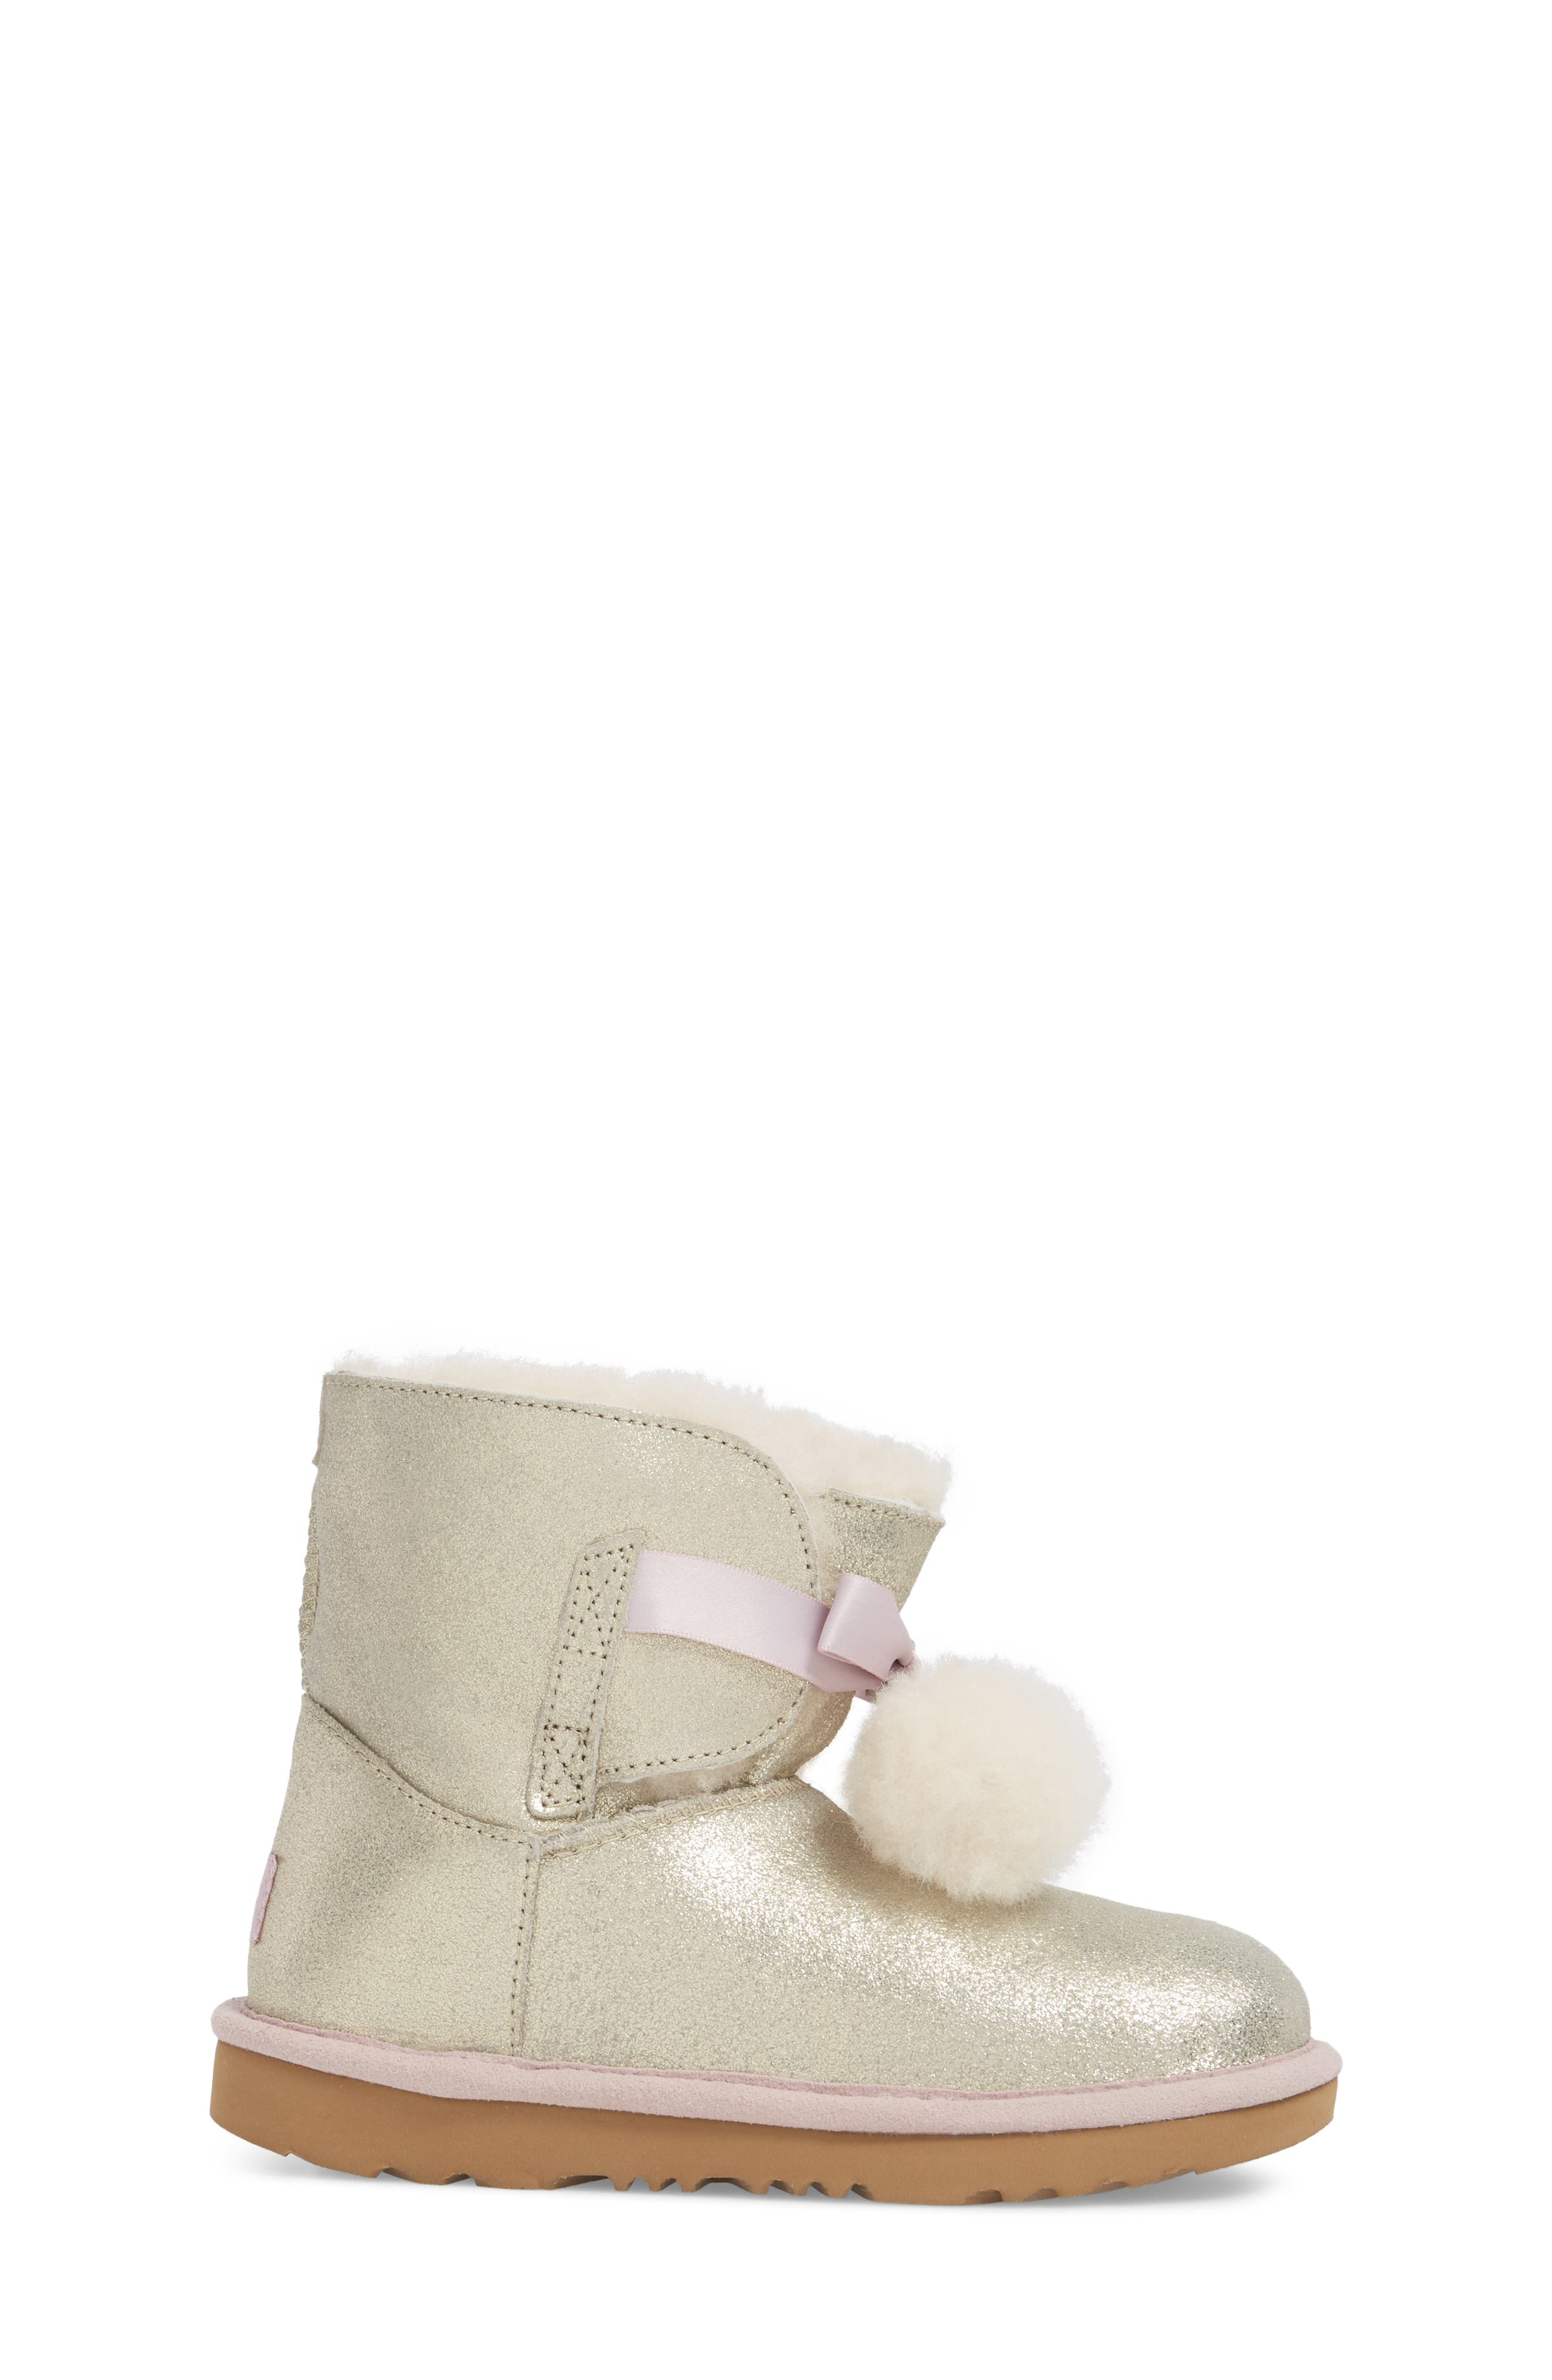 Gita Metallic Genuine Shearling Pom Boot,                             Alternate thumbnail 3, color,                             GOLD